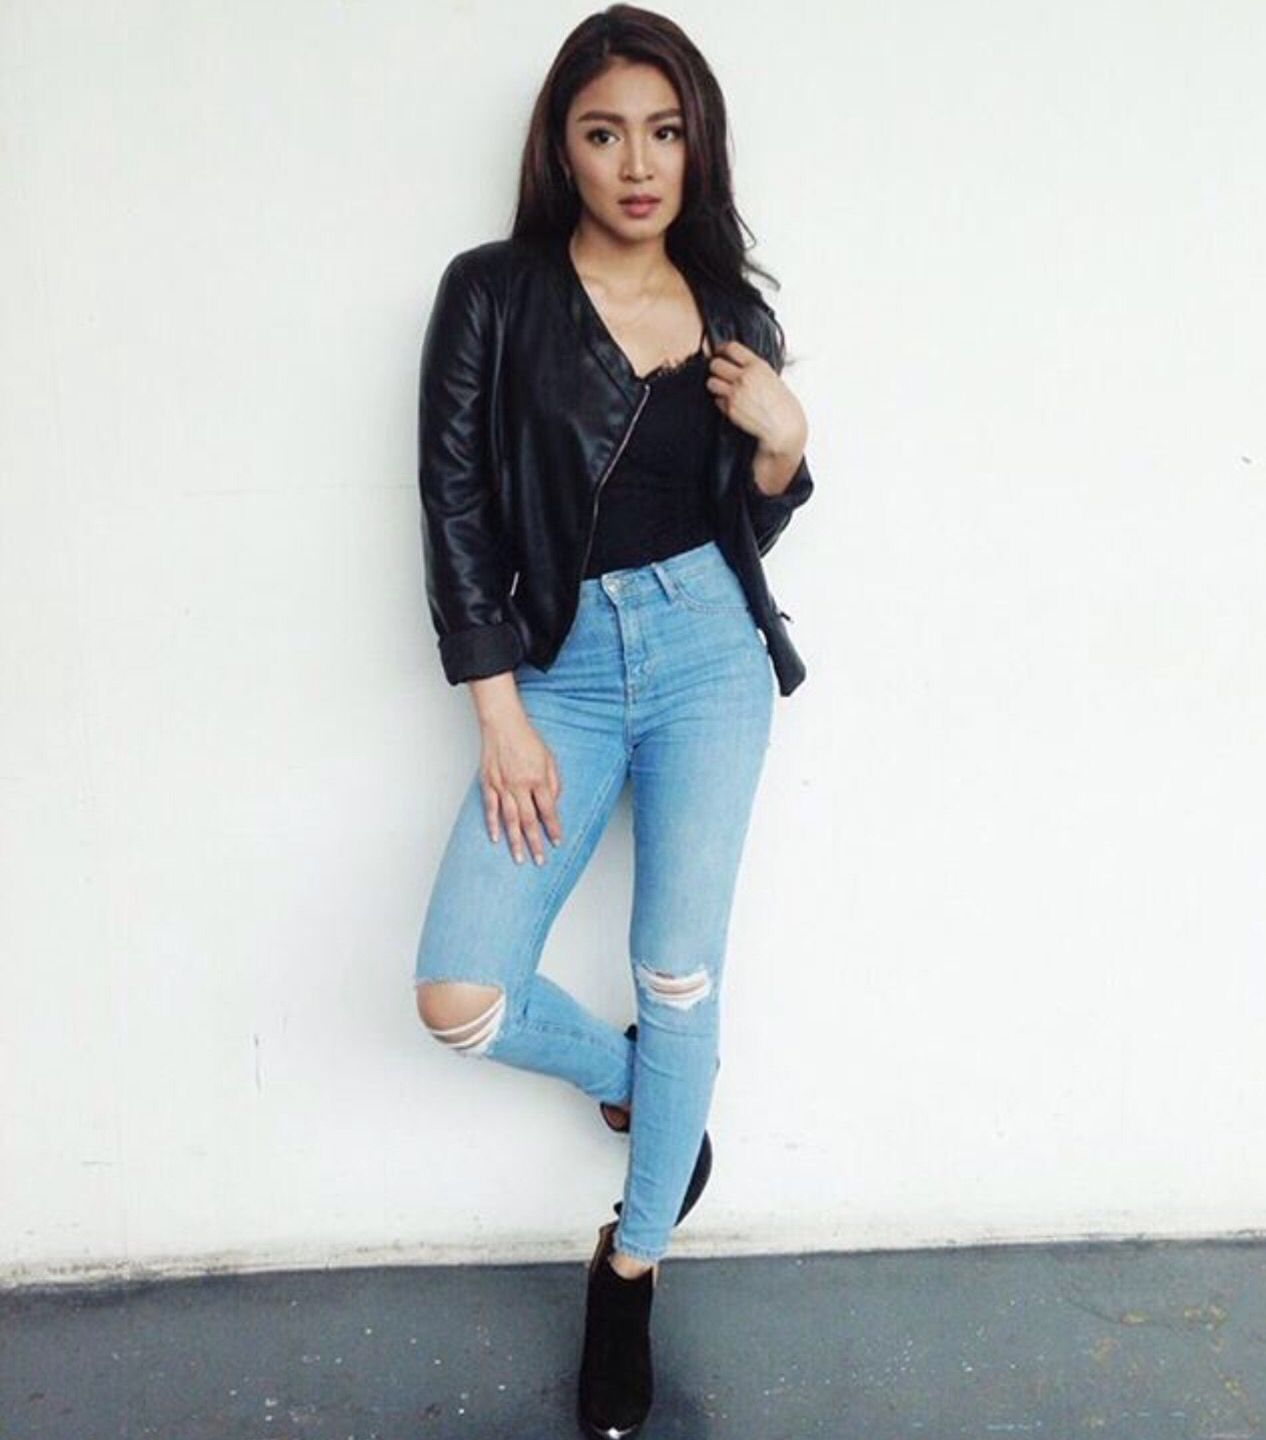 Nadine for It's Showtime (ctto)